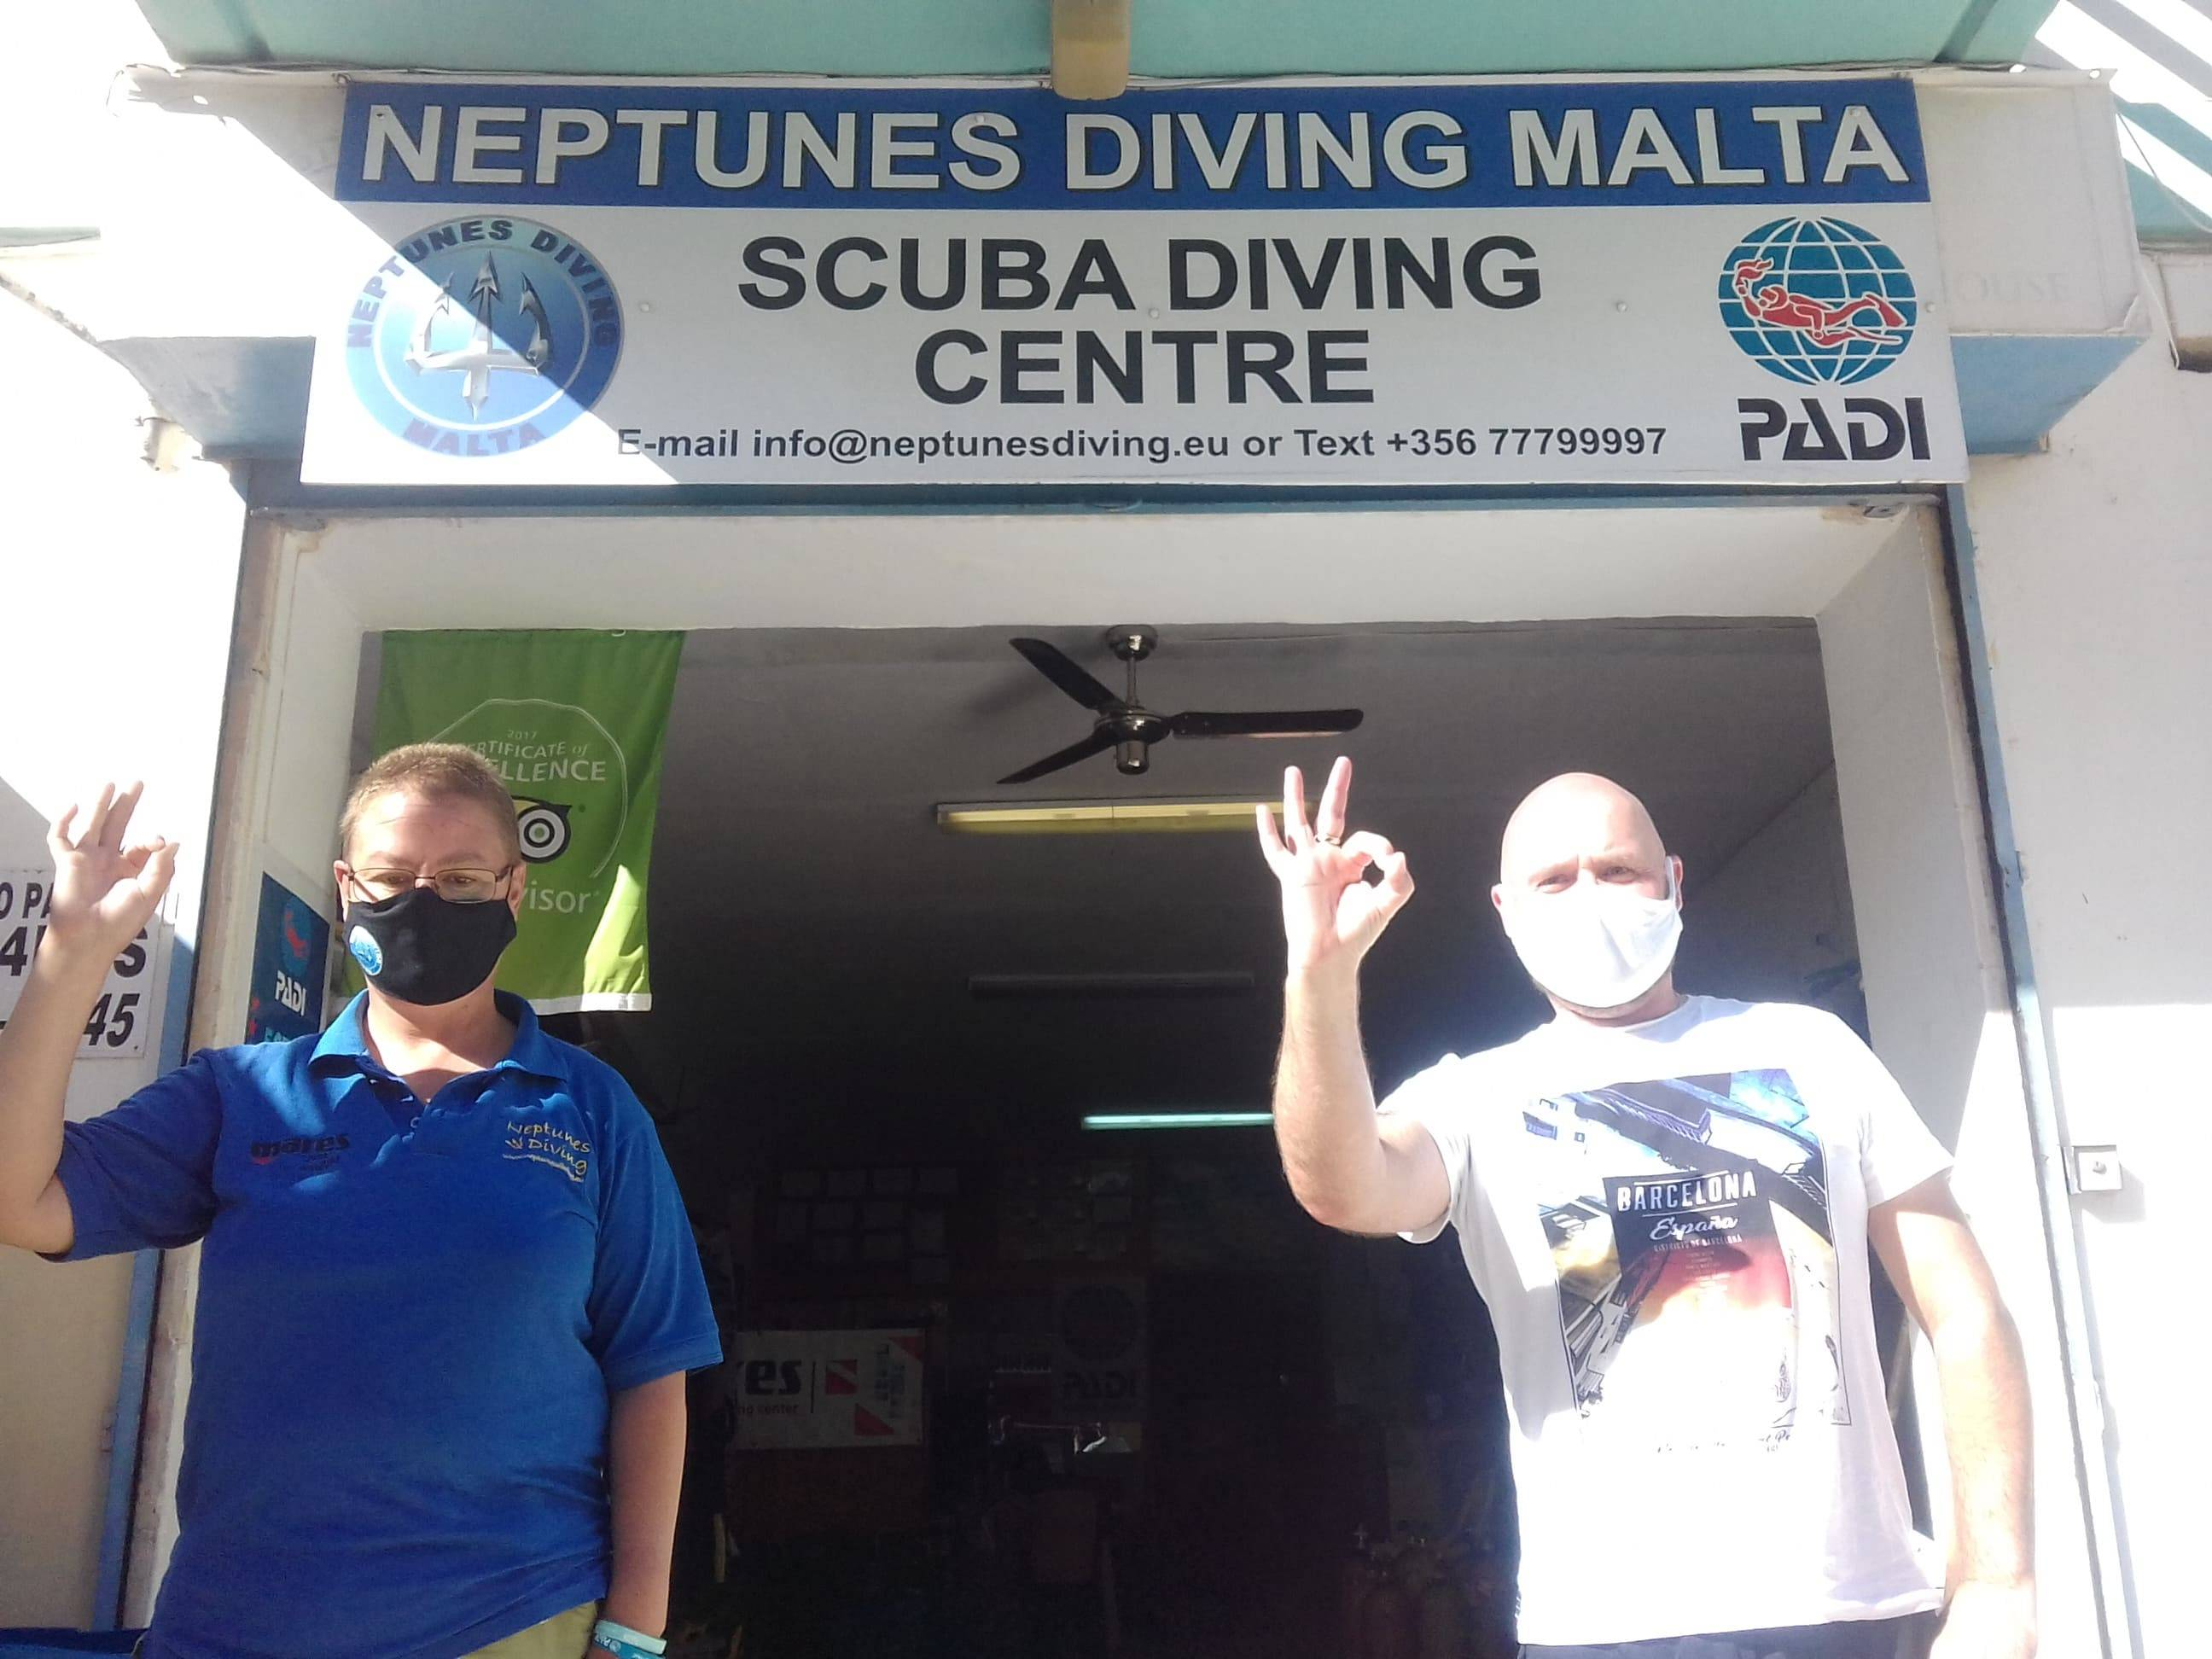 PADI Open Water Diver Course at Neptunes Diving Malta